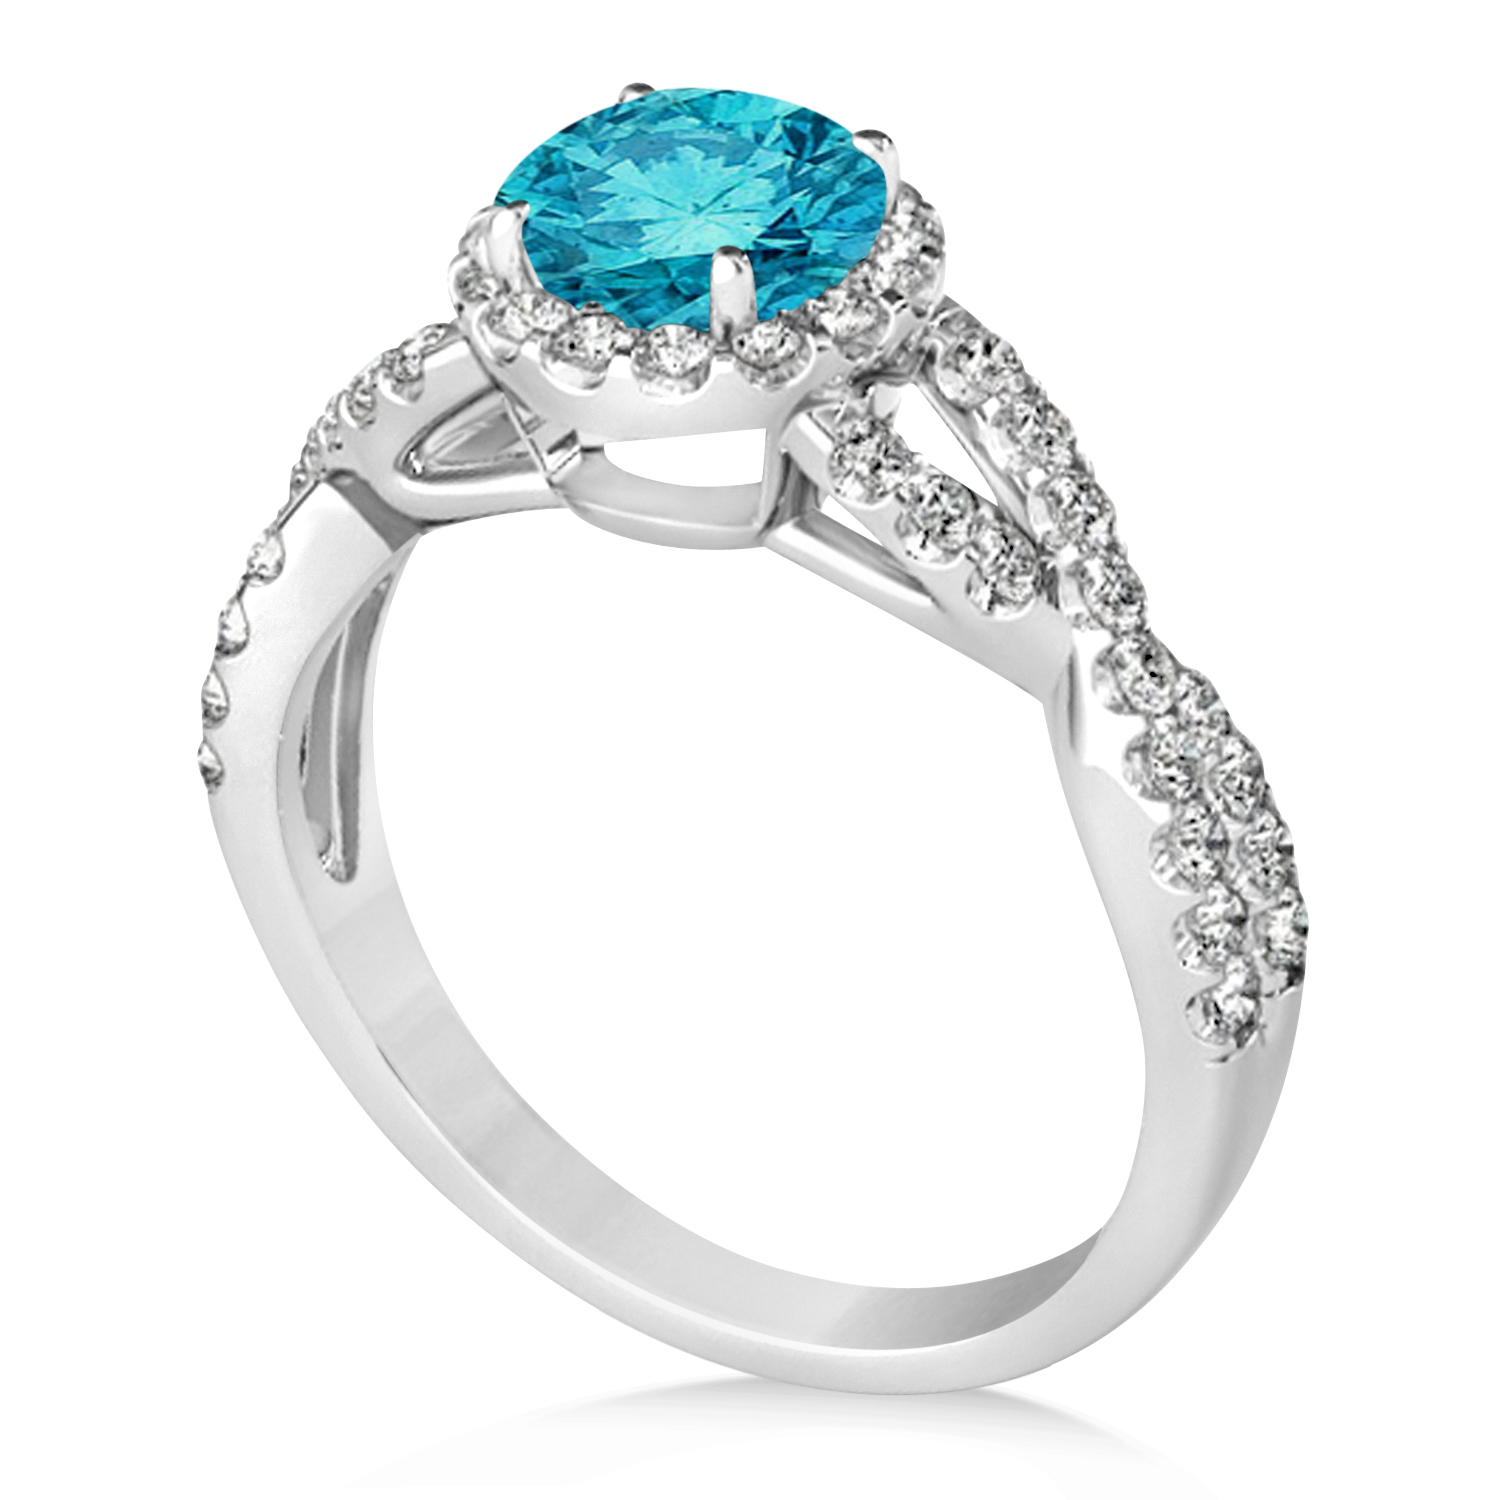 Blue Diamond & Diamond Twisted Engagement Ring 14k White Gold 1.30ct